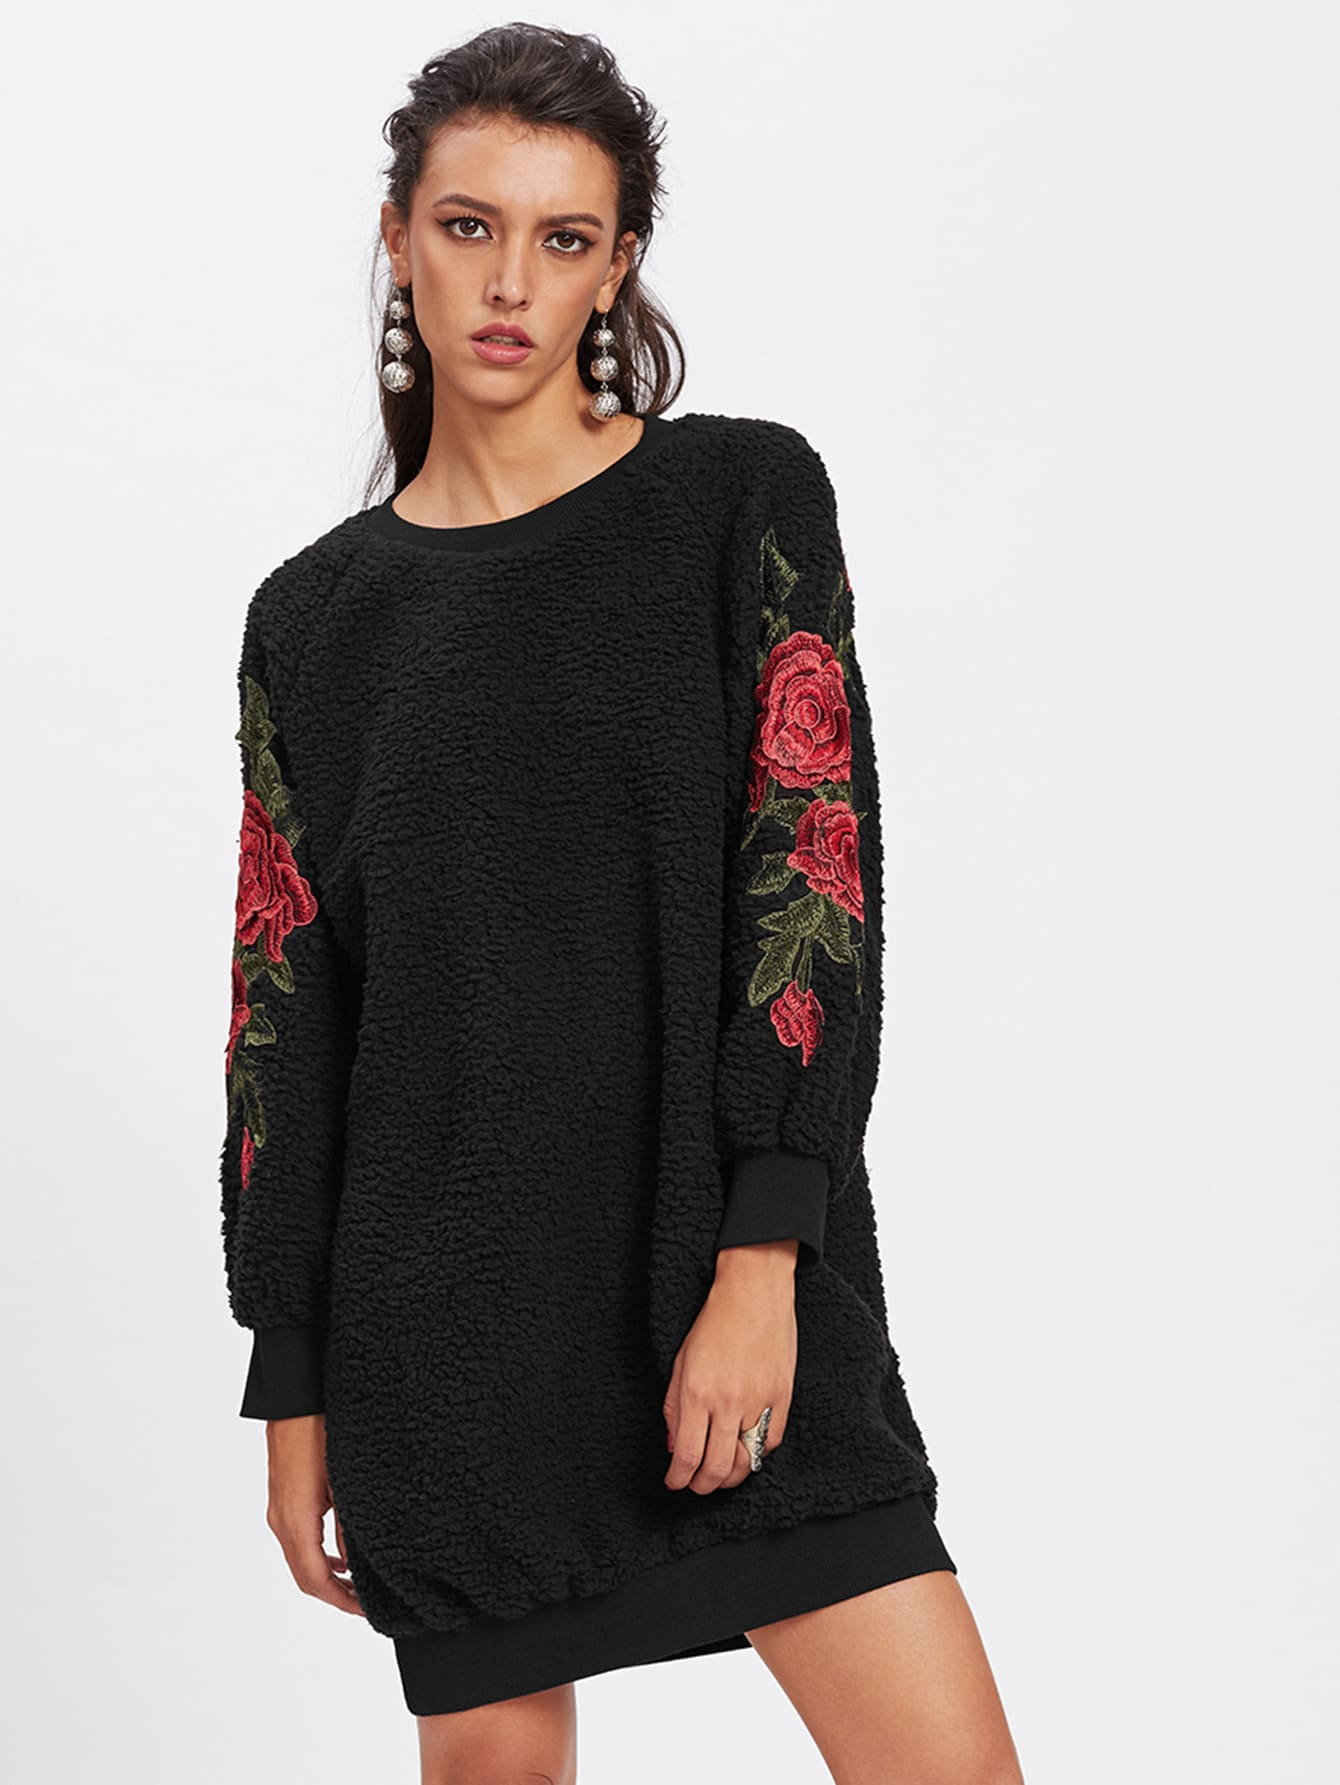 Embroidered Rose Applique Fluffy Sweatshirt Dress active letter pattern hooded design cut out tracksuit in black